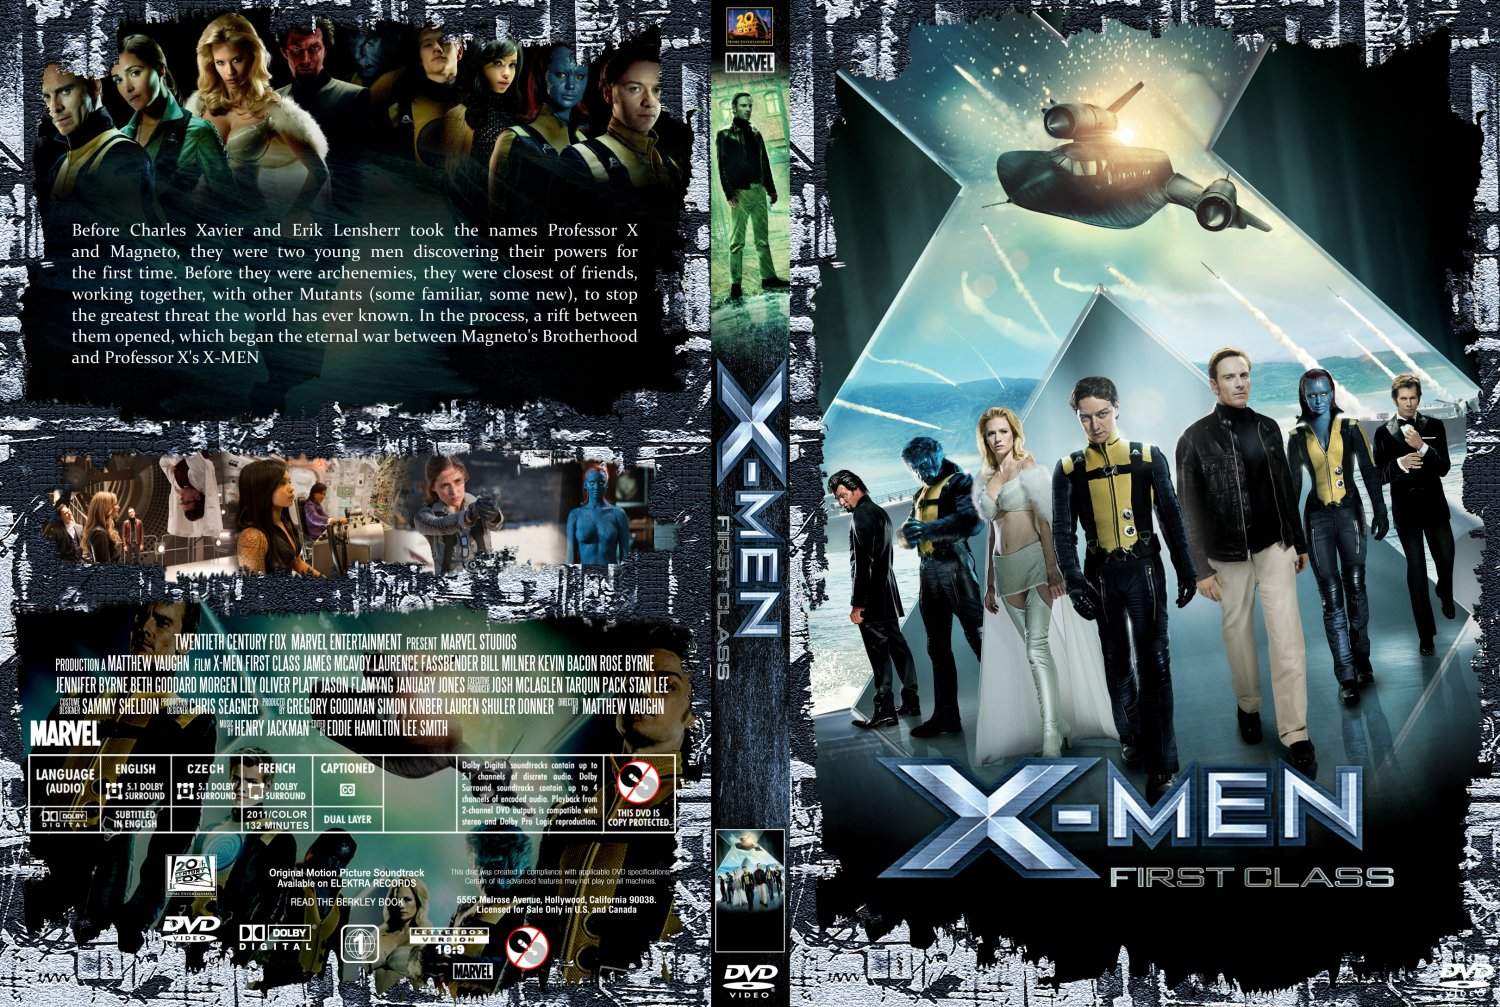 X-Men III - First Class